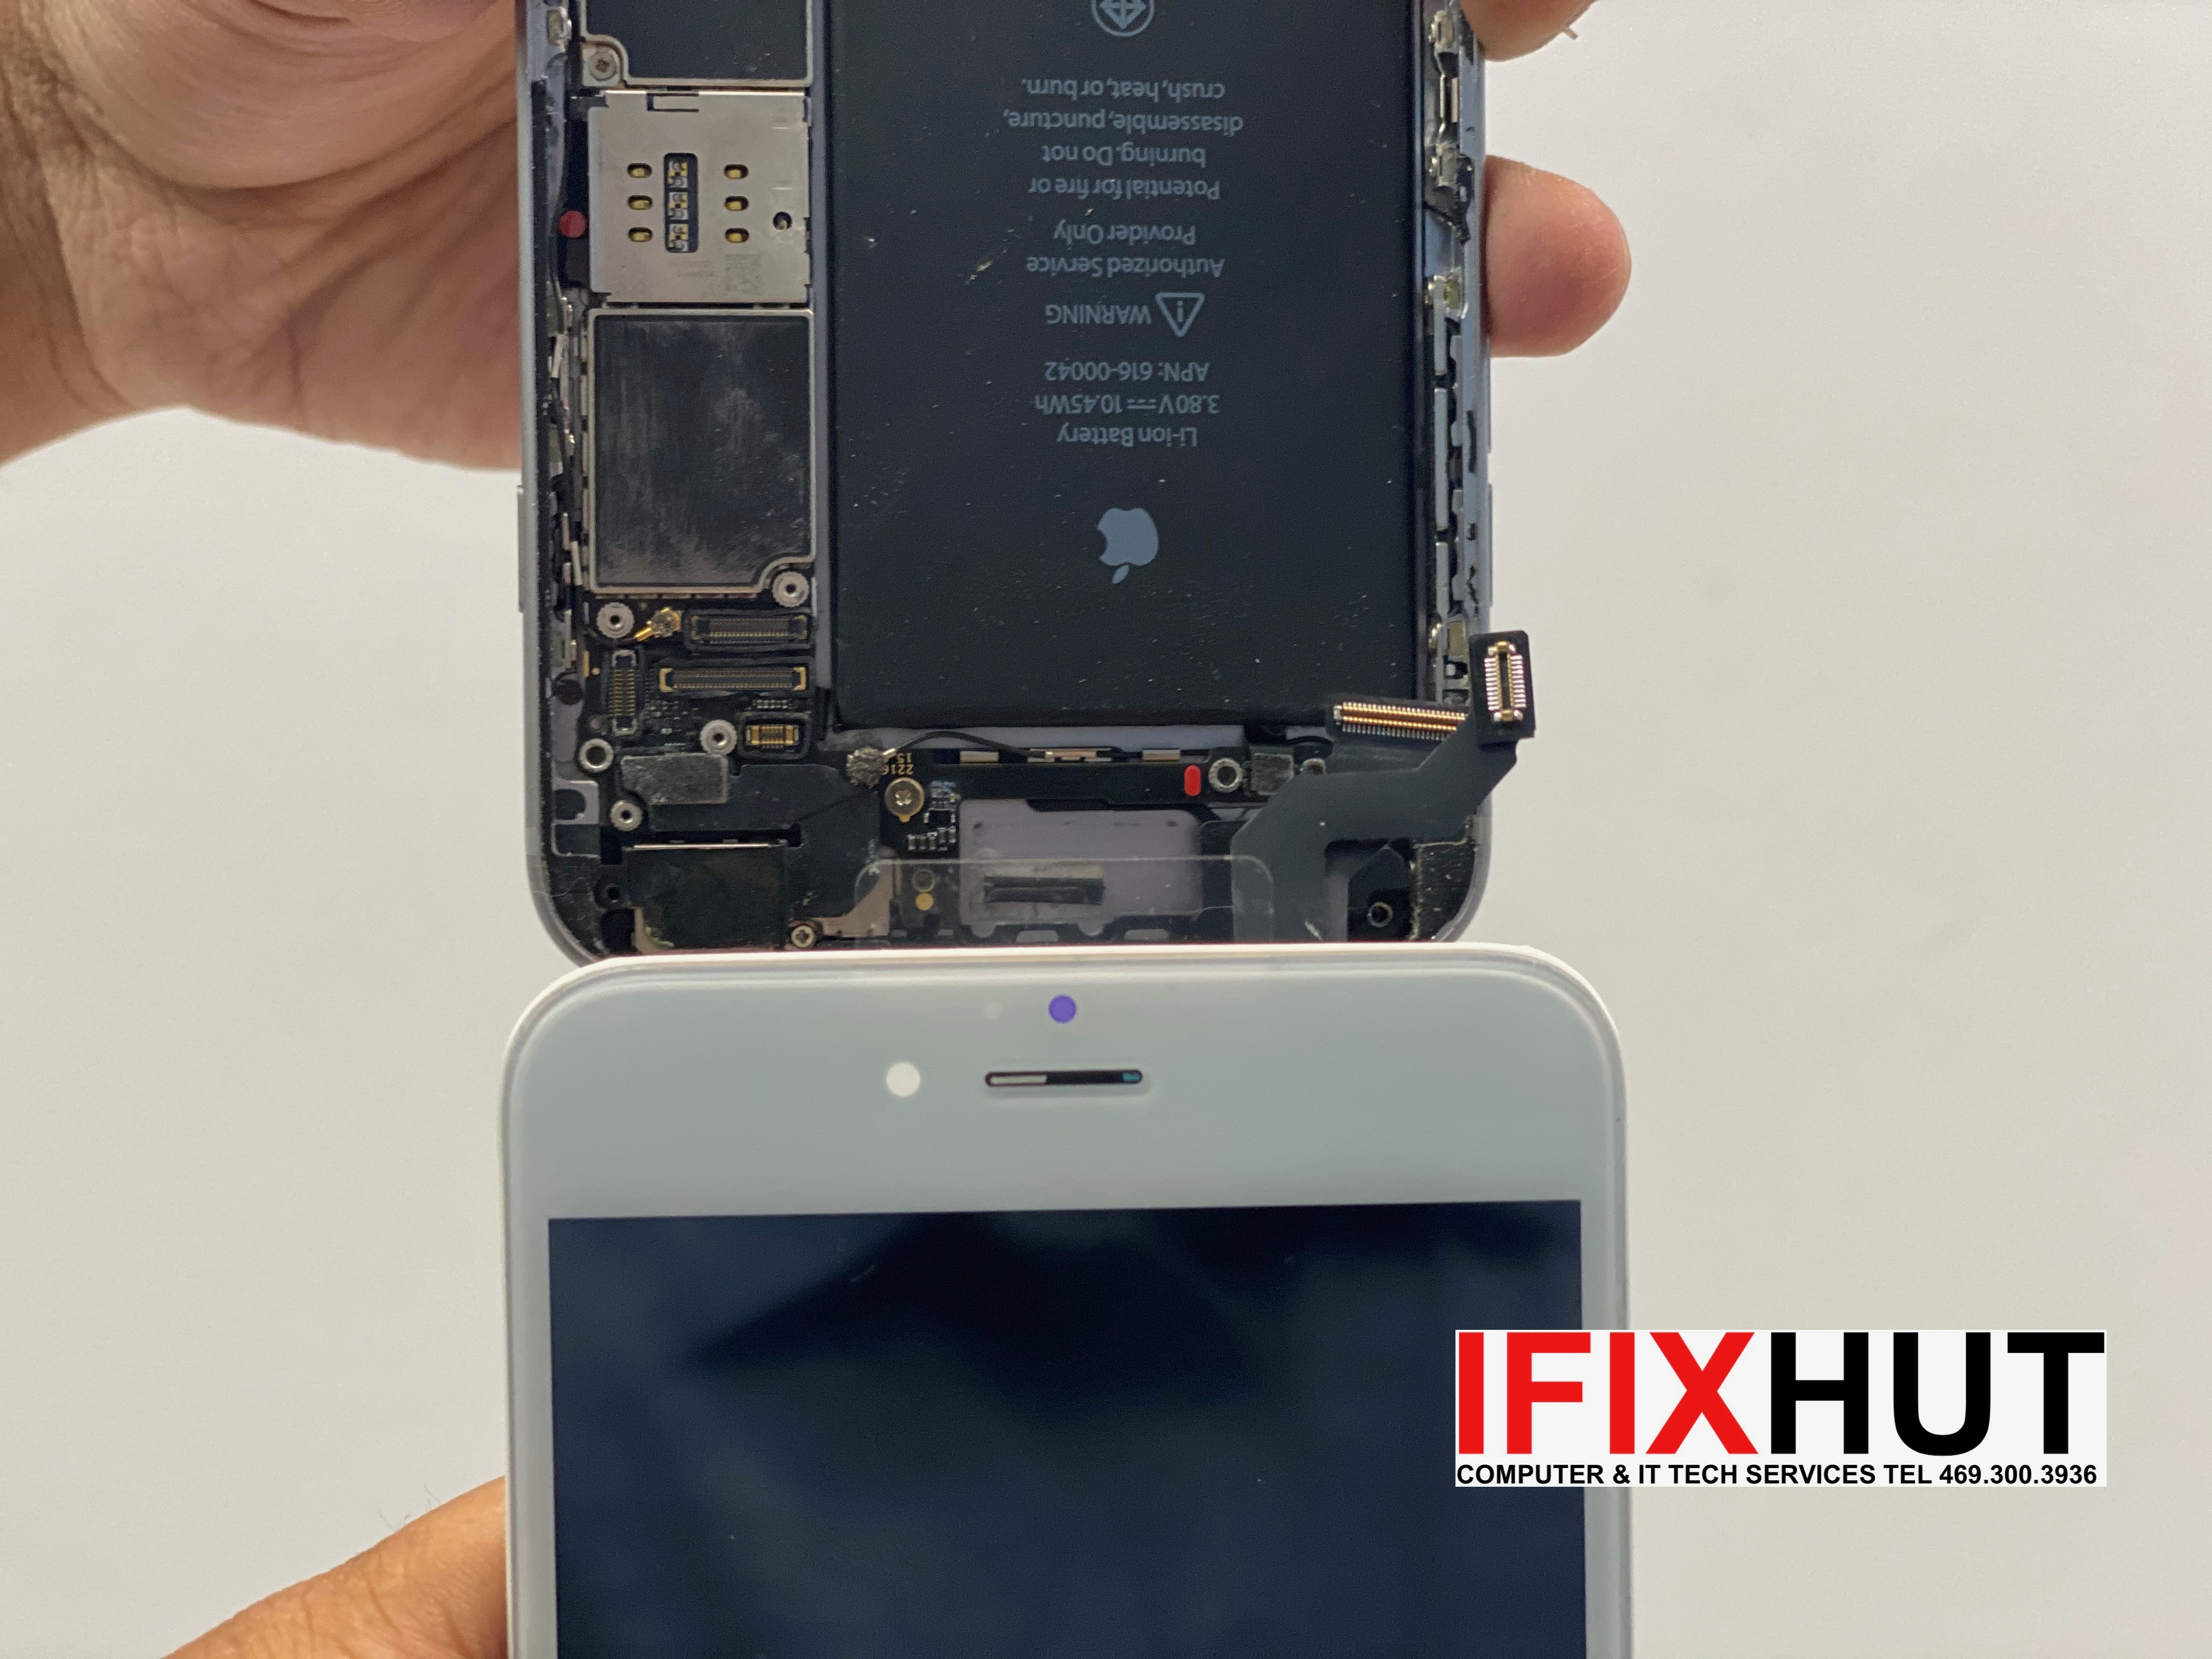 iPhone repair service near McKinney